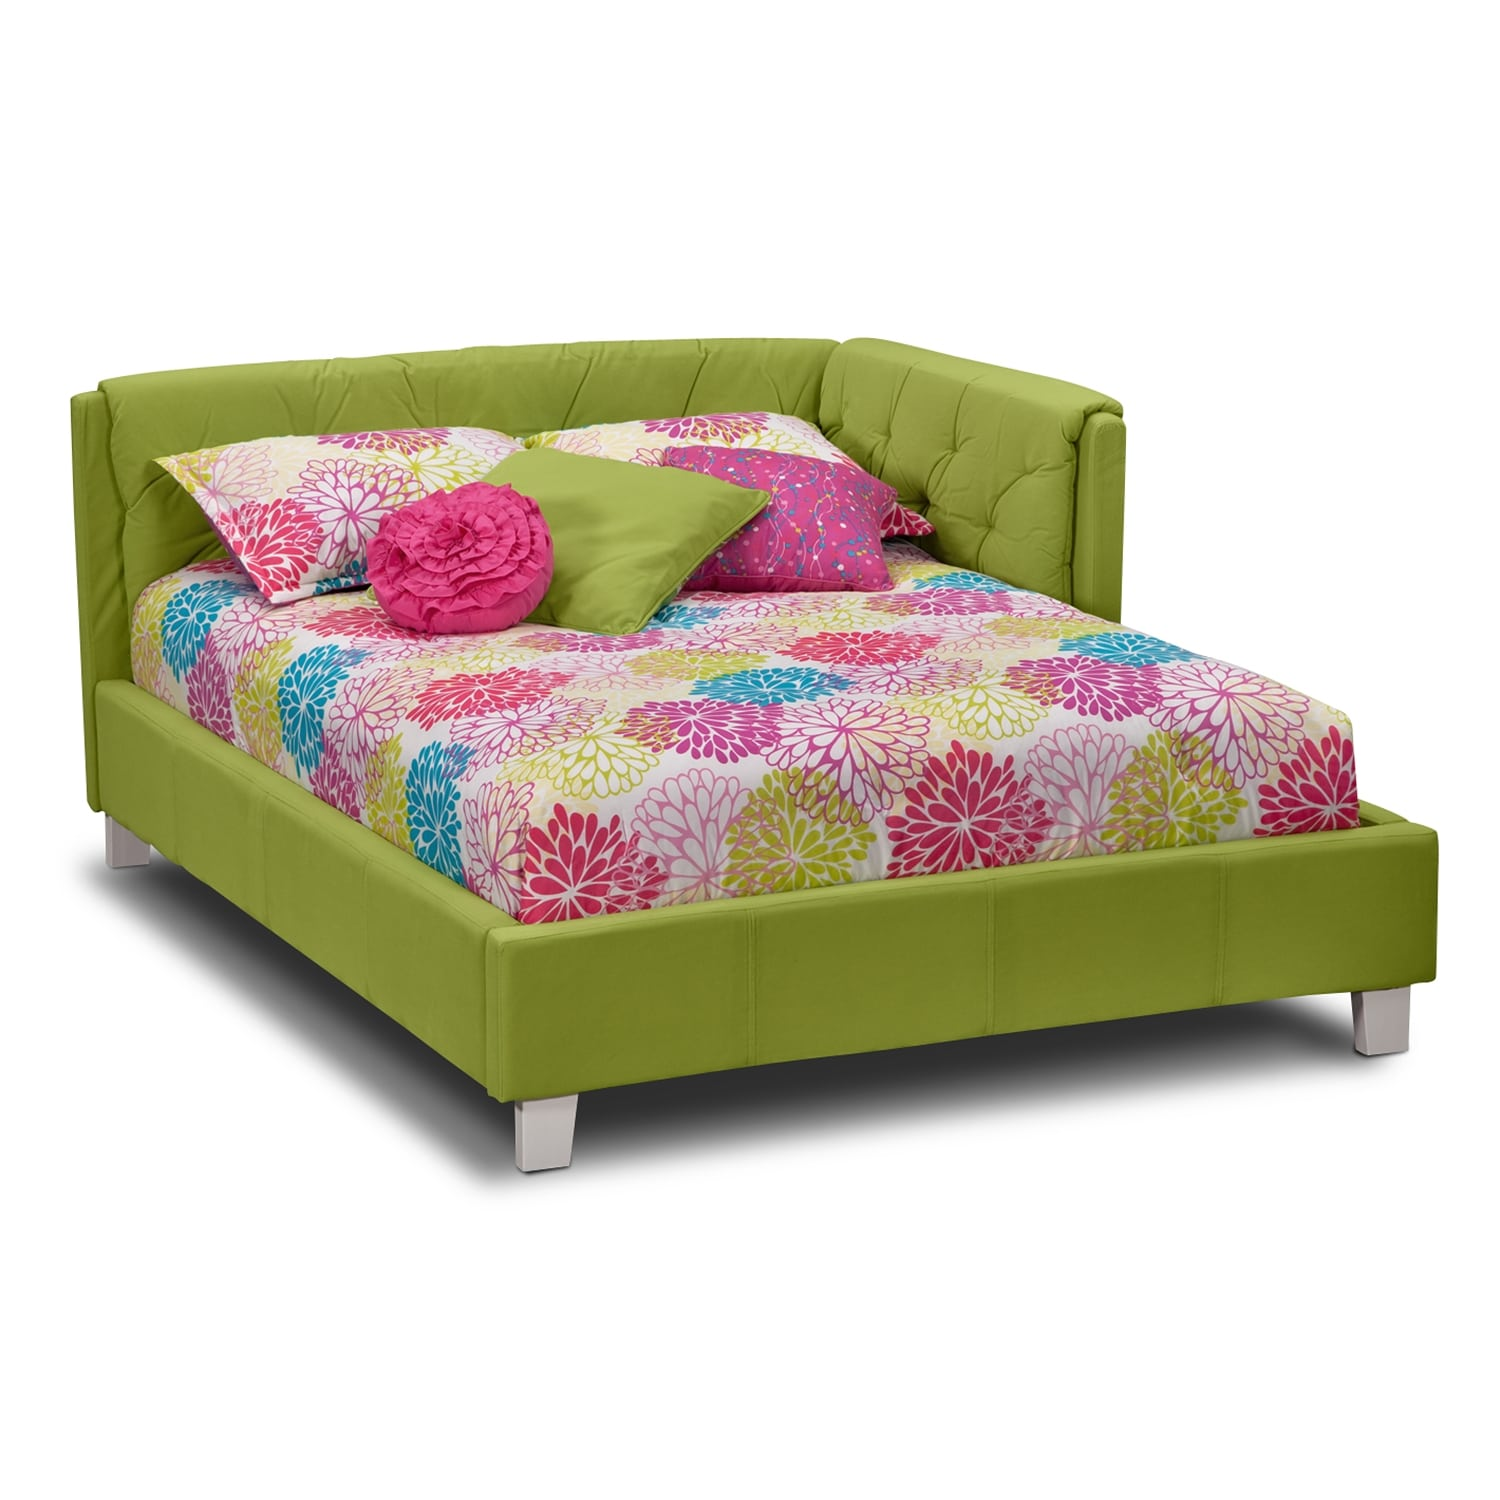 Kids Furniture - Taylor Green Full Corner Bed